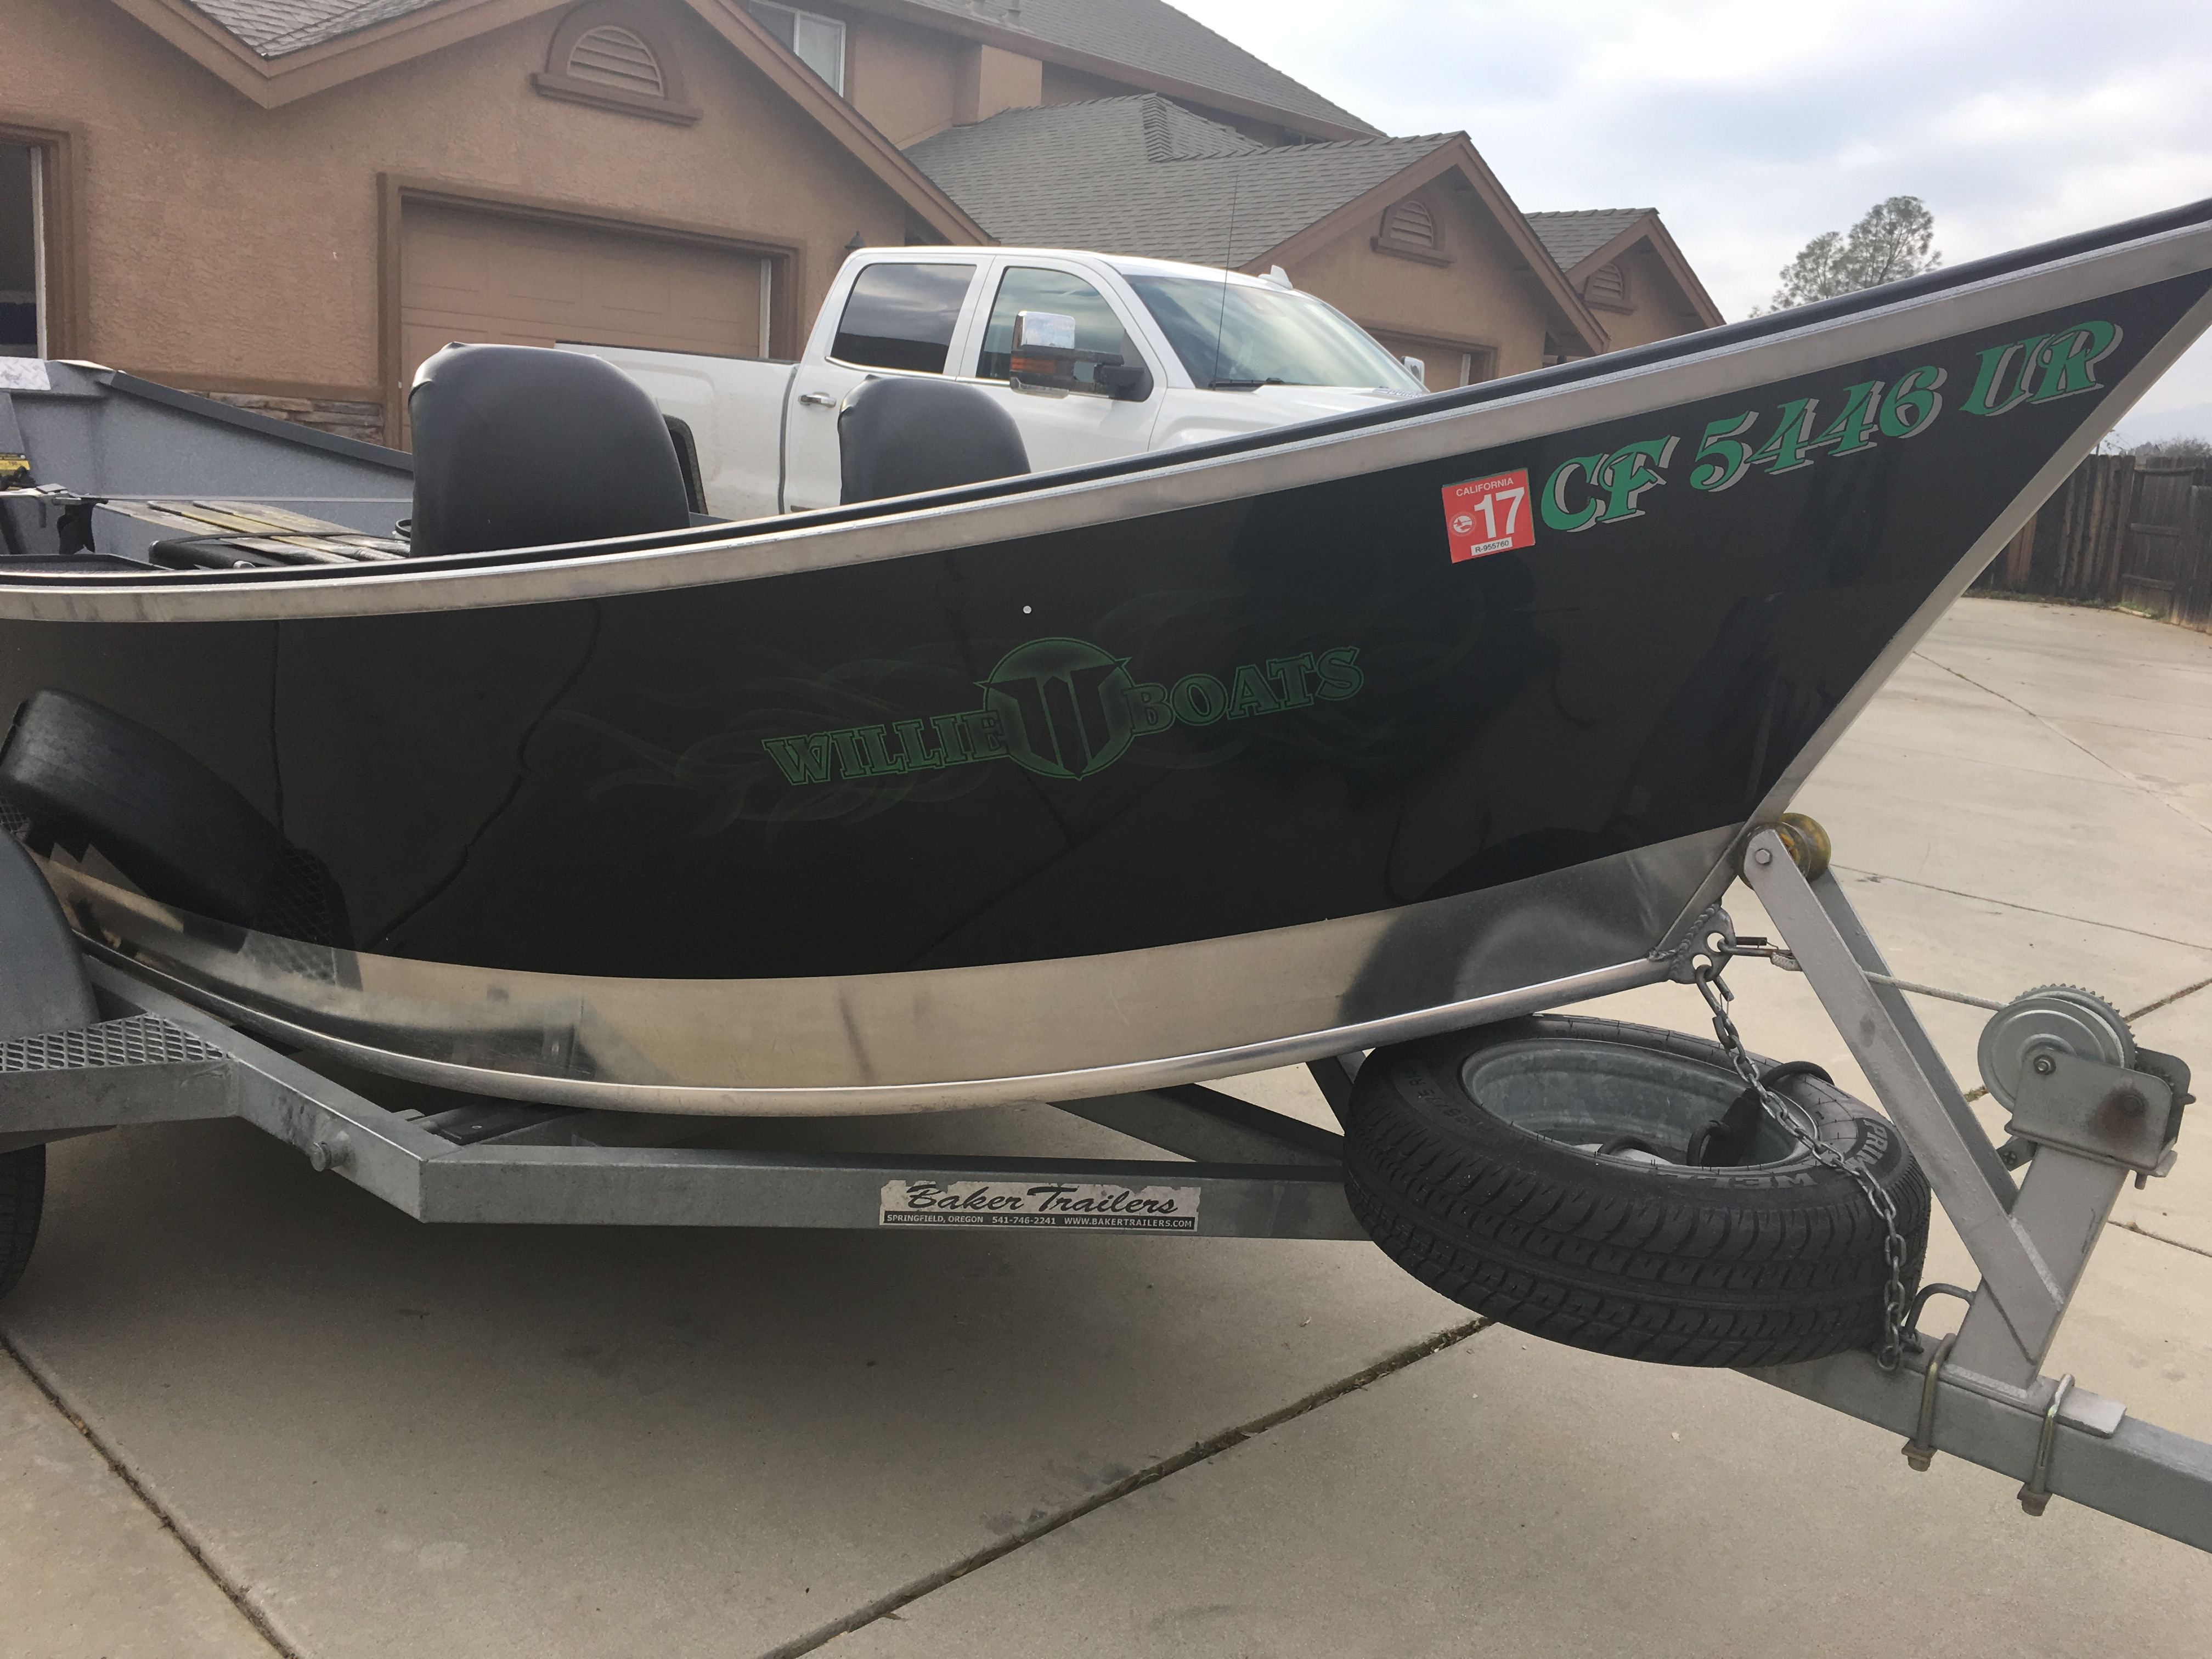 2010 17X60 Willie Drift Boat $11,000 - Willie Boats